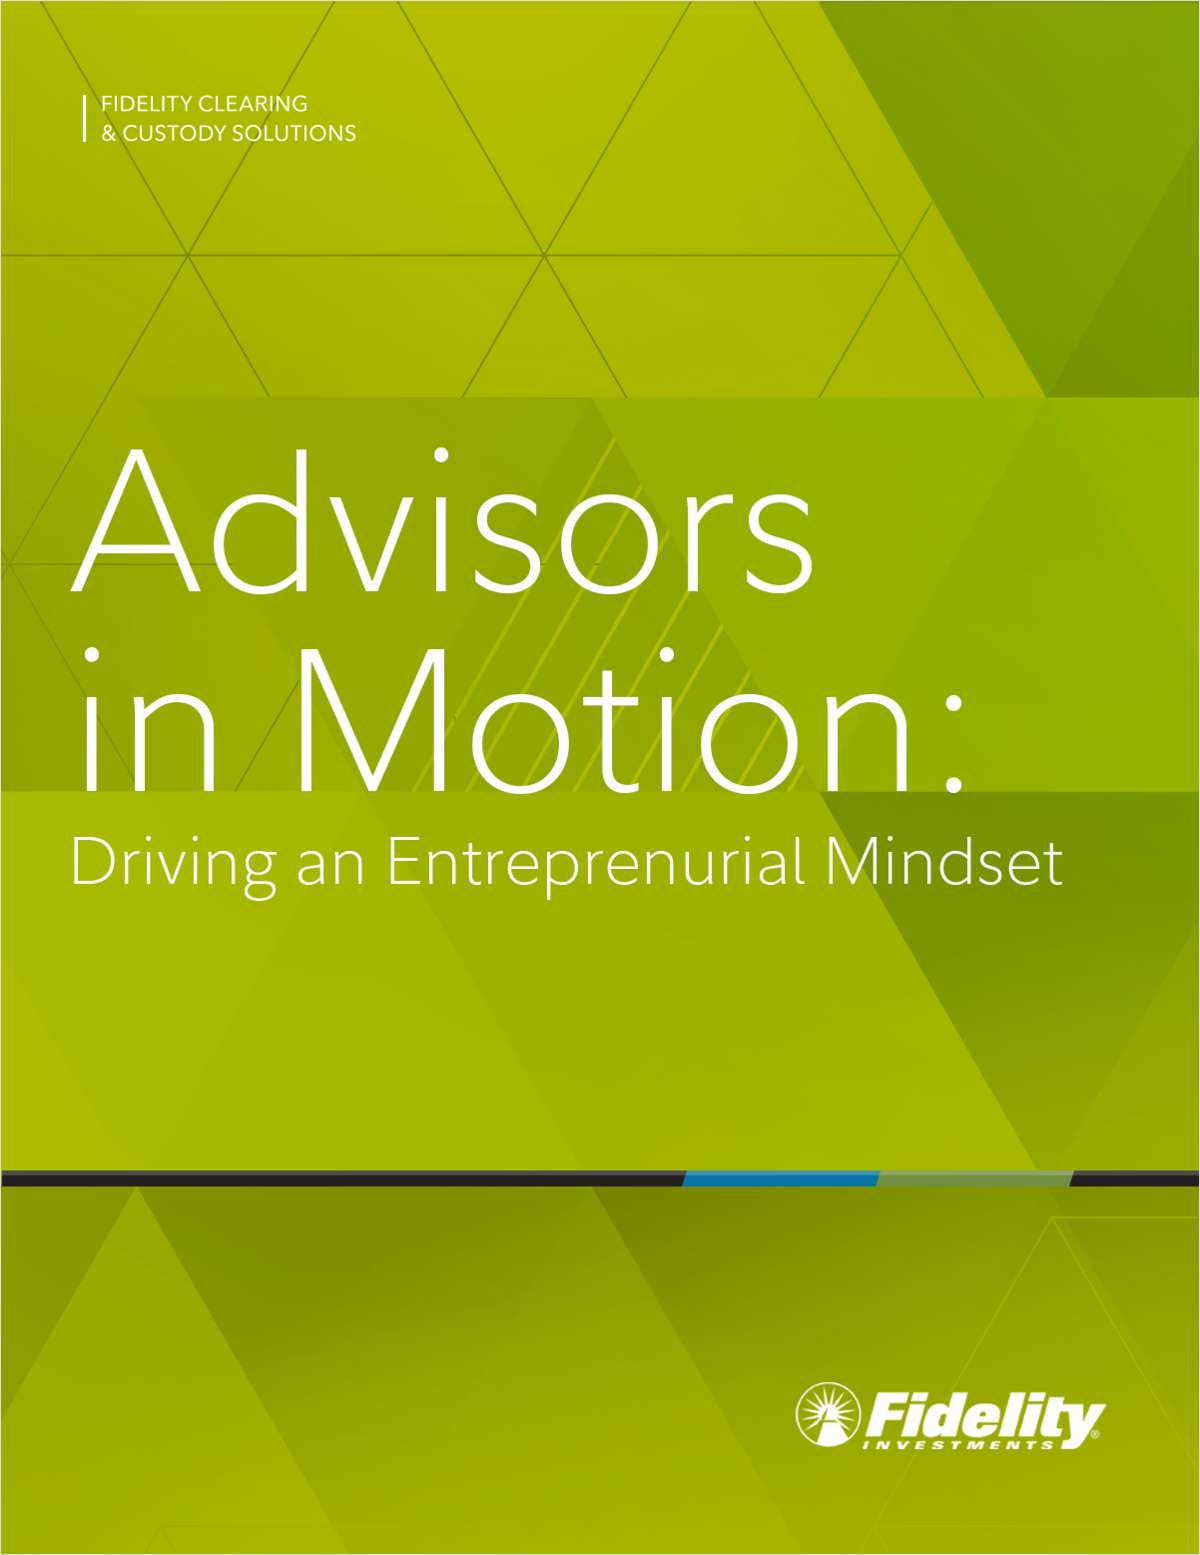 What's Driving Advisors to Move in the New Market Landscape?